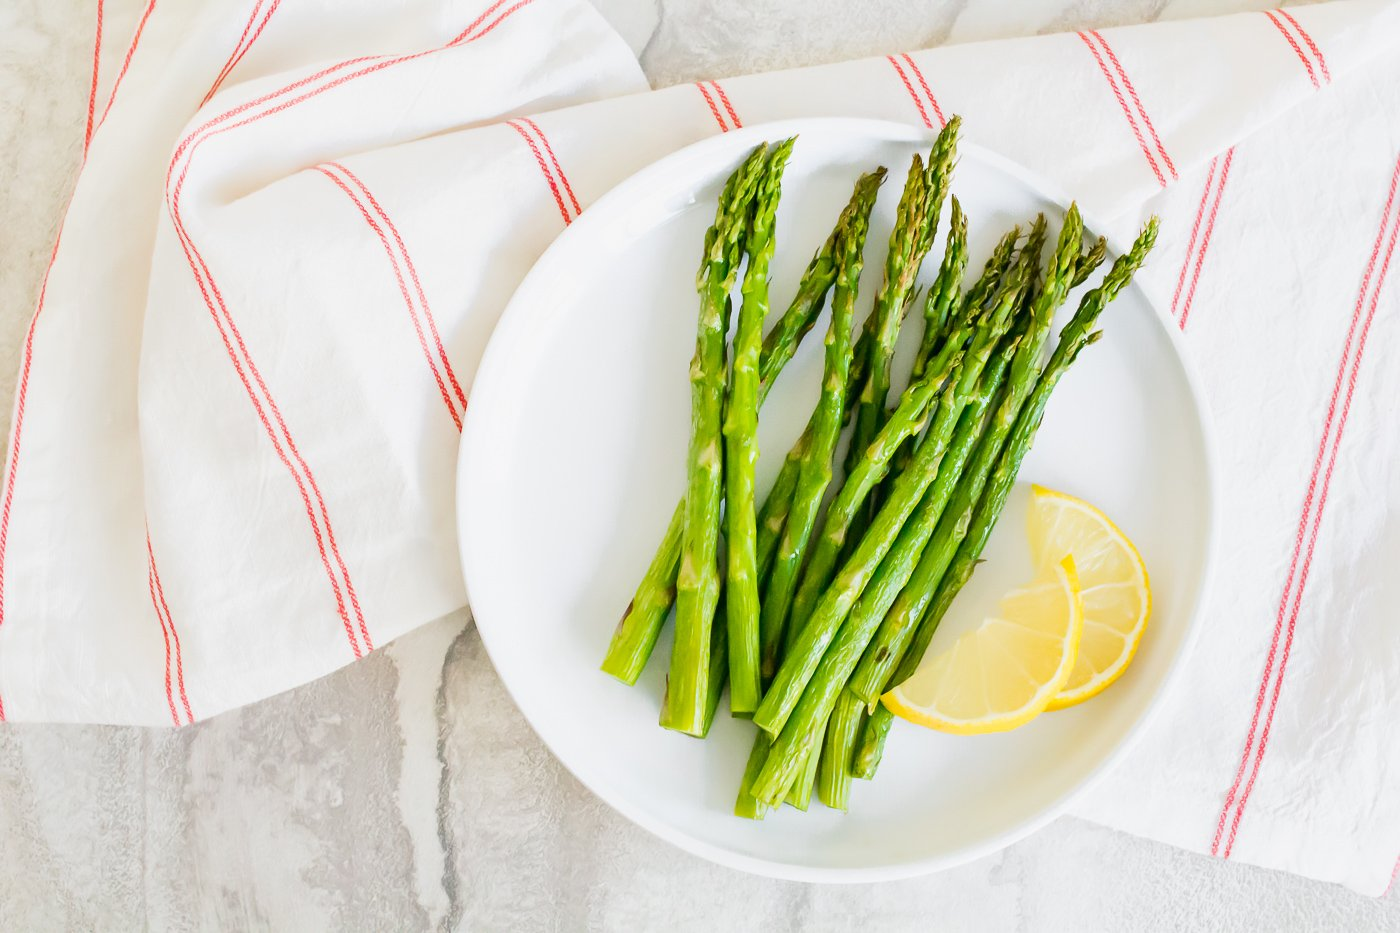 overhead shot of cooked asparagus on a white plate on top of a white and red striped napkin